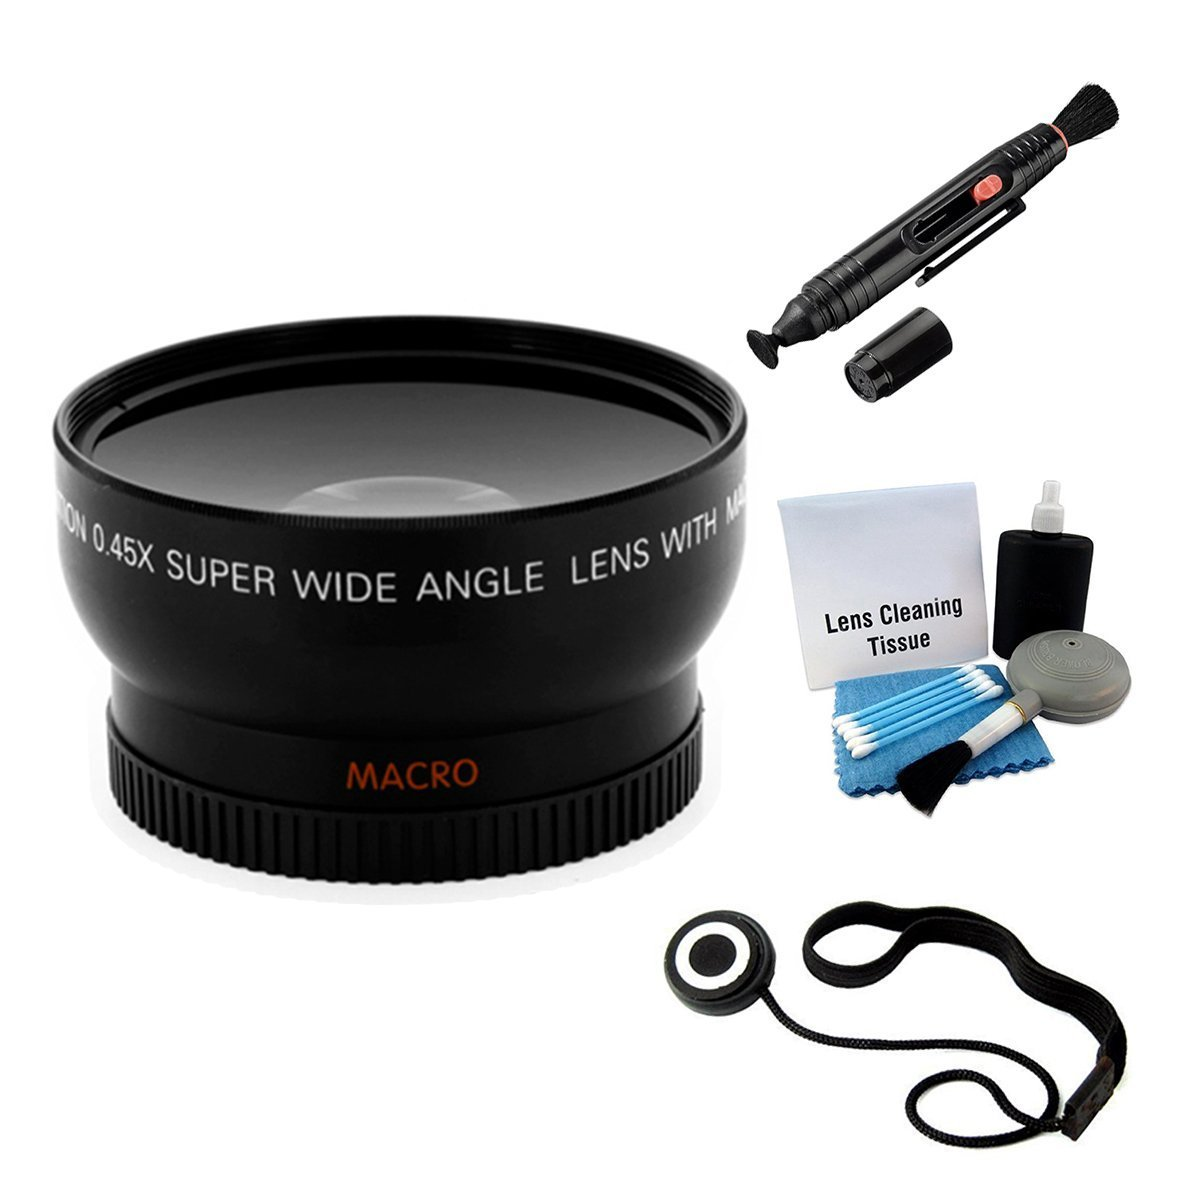 UltraPro 58mm Digital Wide Angle/Macro Lens Bundle for Nikon D3400 DSLR Camera with 70-300mm Lens. UltraPro Deluxe Accessory Set Included by UltraPro